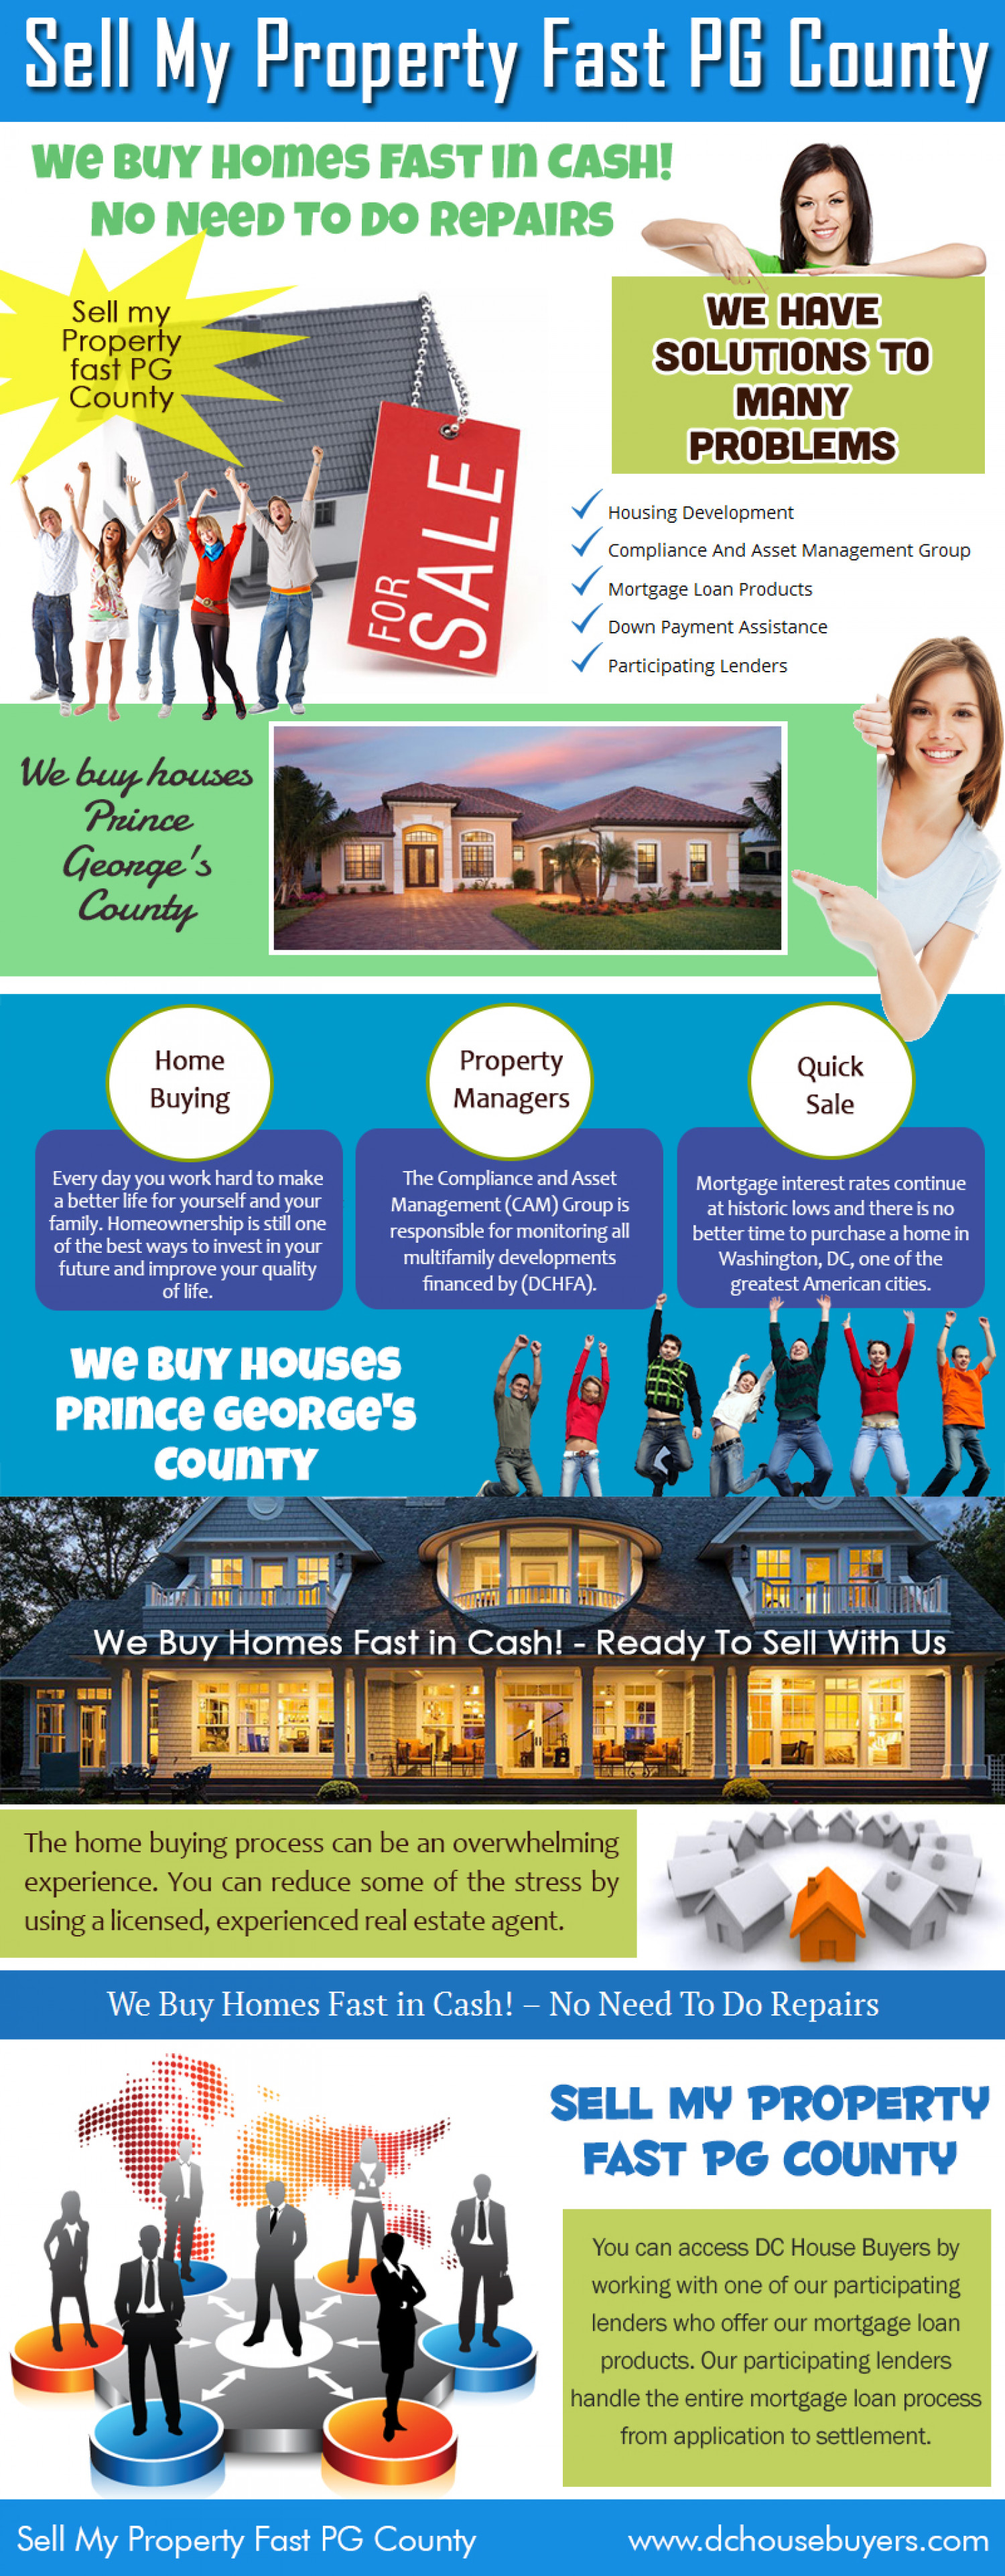 sell my property fast PG County Infographic